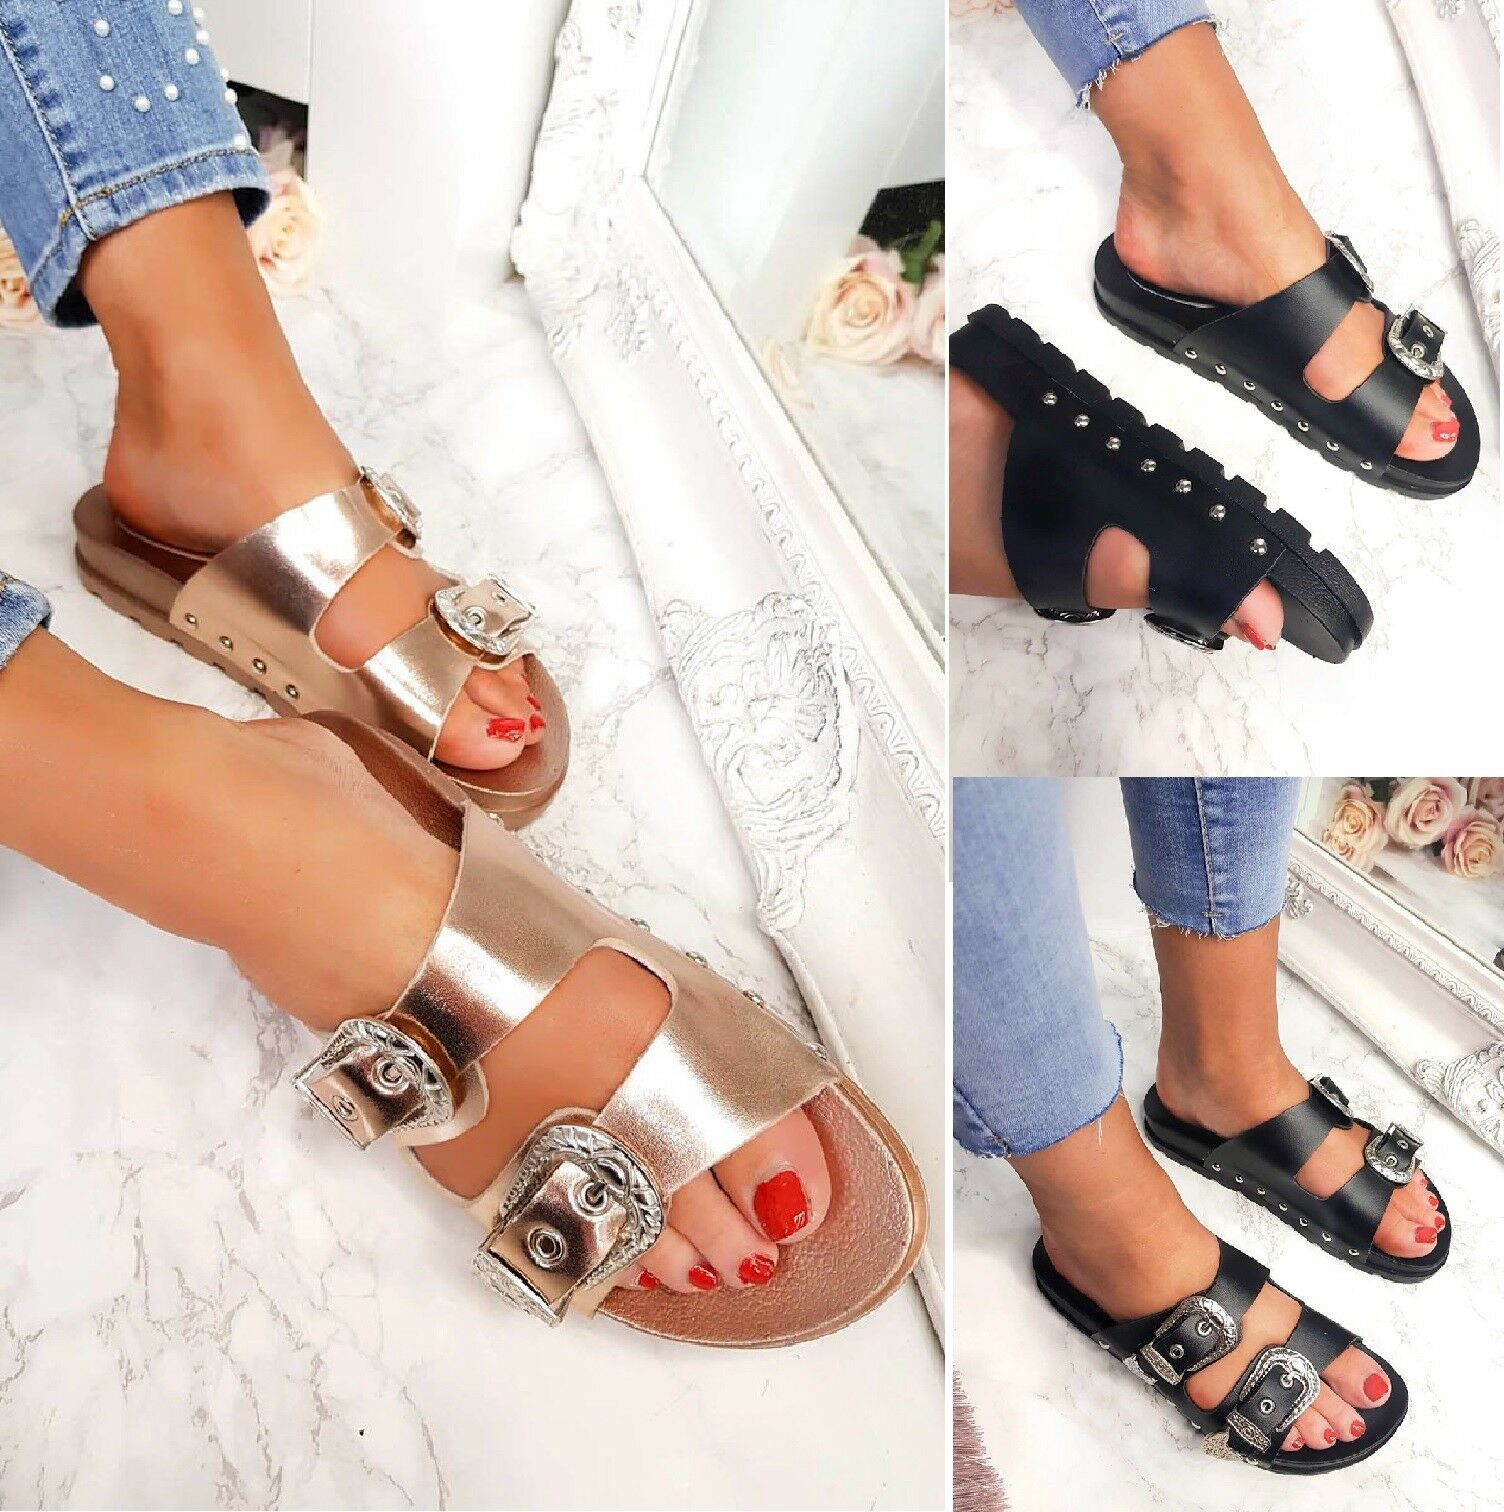 LADIES COMFY SANDALS STUDDED CELEB STYLE SLIDERS MULE SUMMER BUCKLE SANDALS COMFY Zapatos SZ 3-8 38b41d